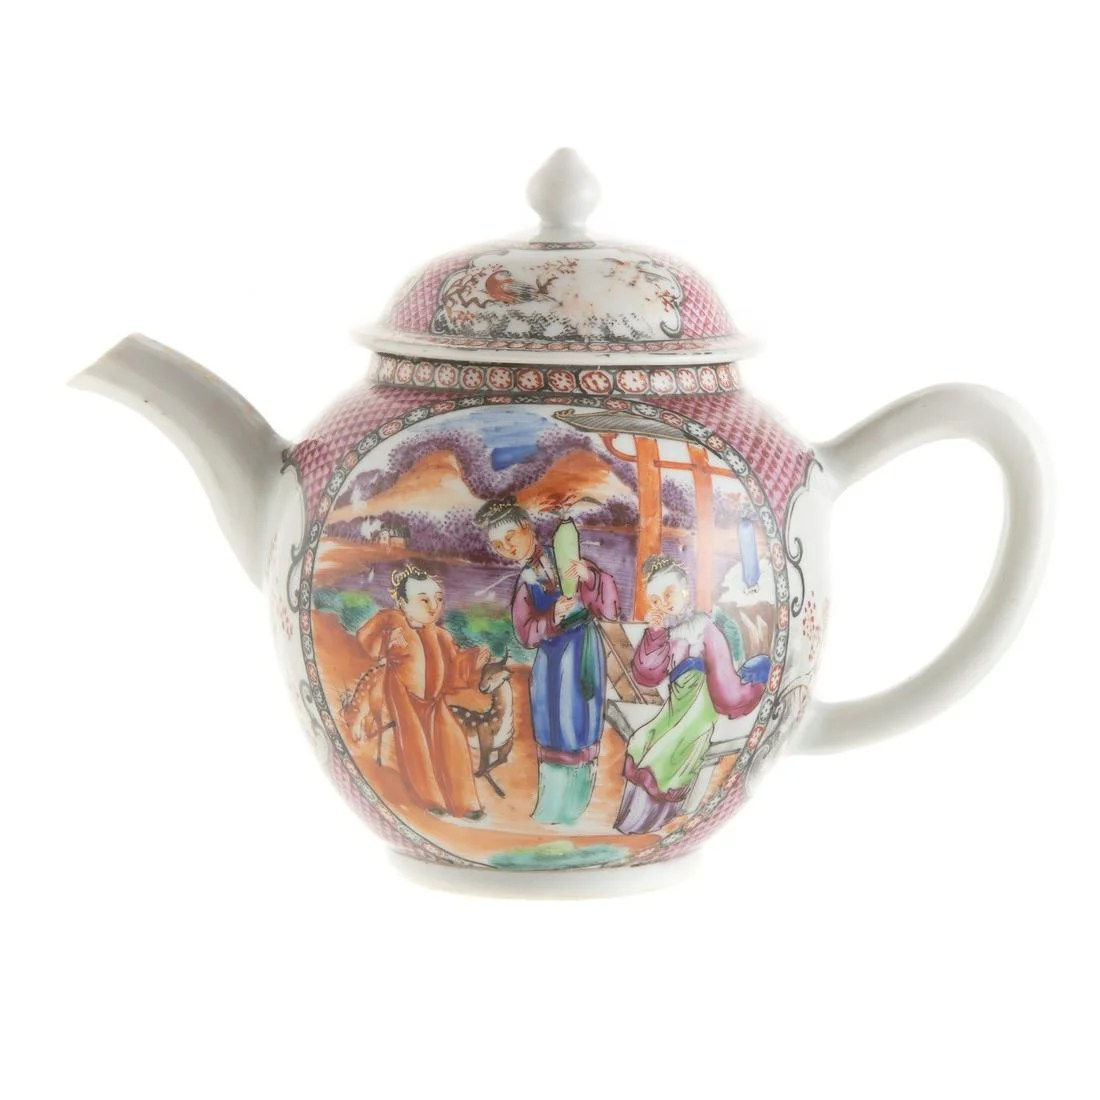 Chinese Export Teapot in the Mandarin Palette